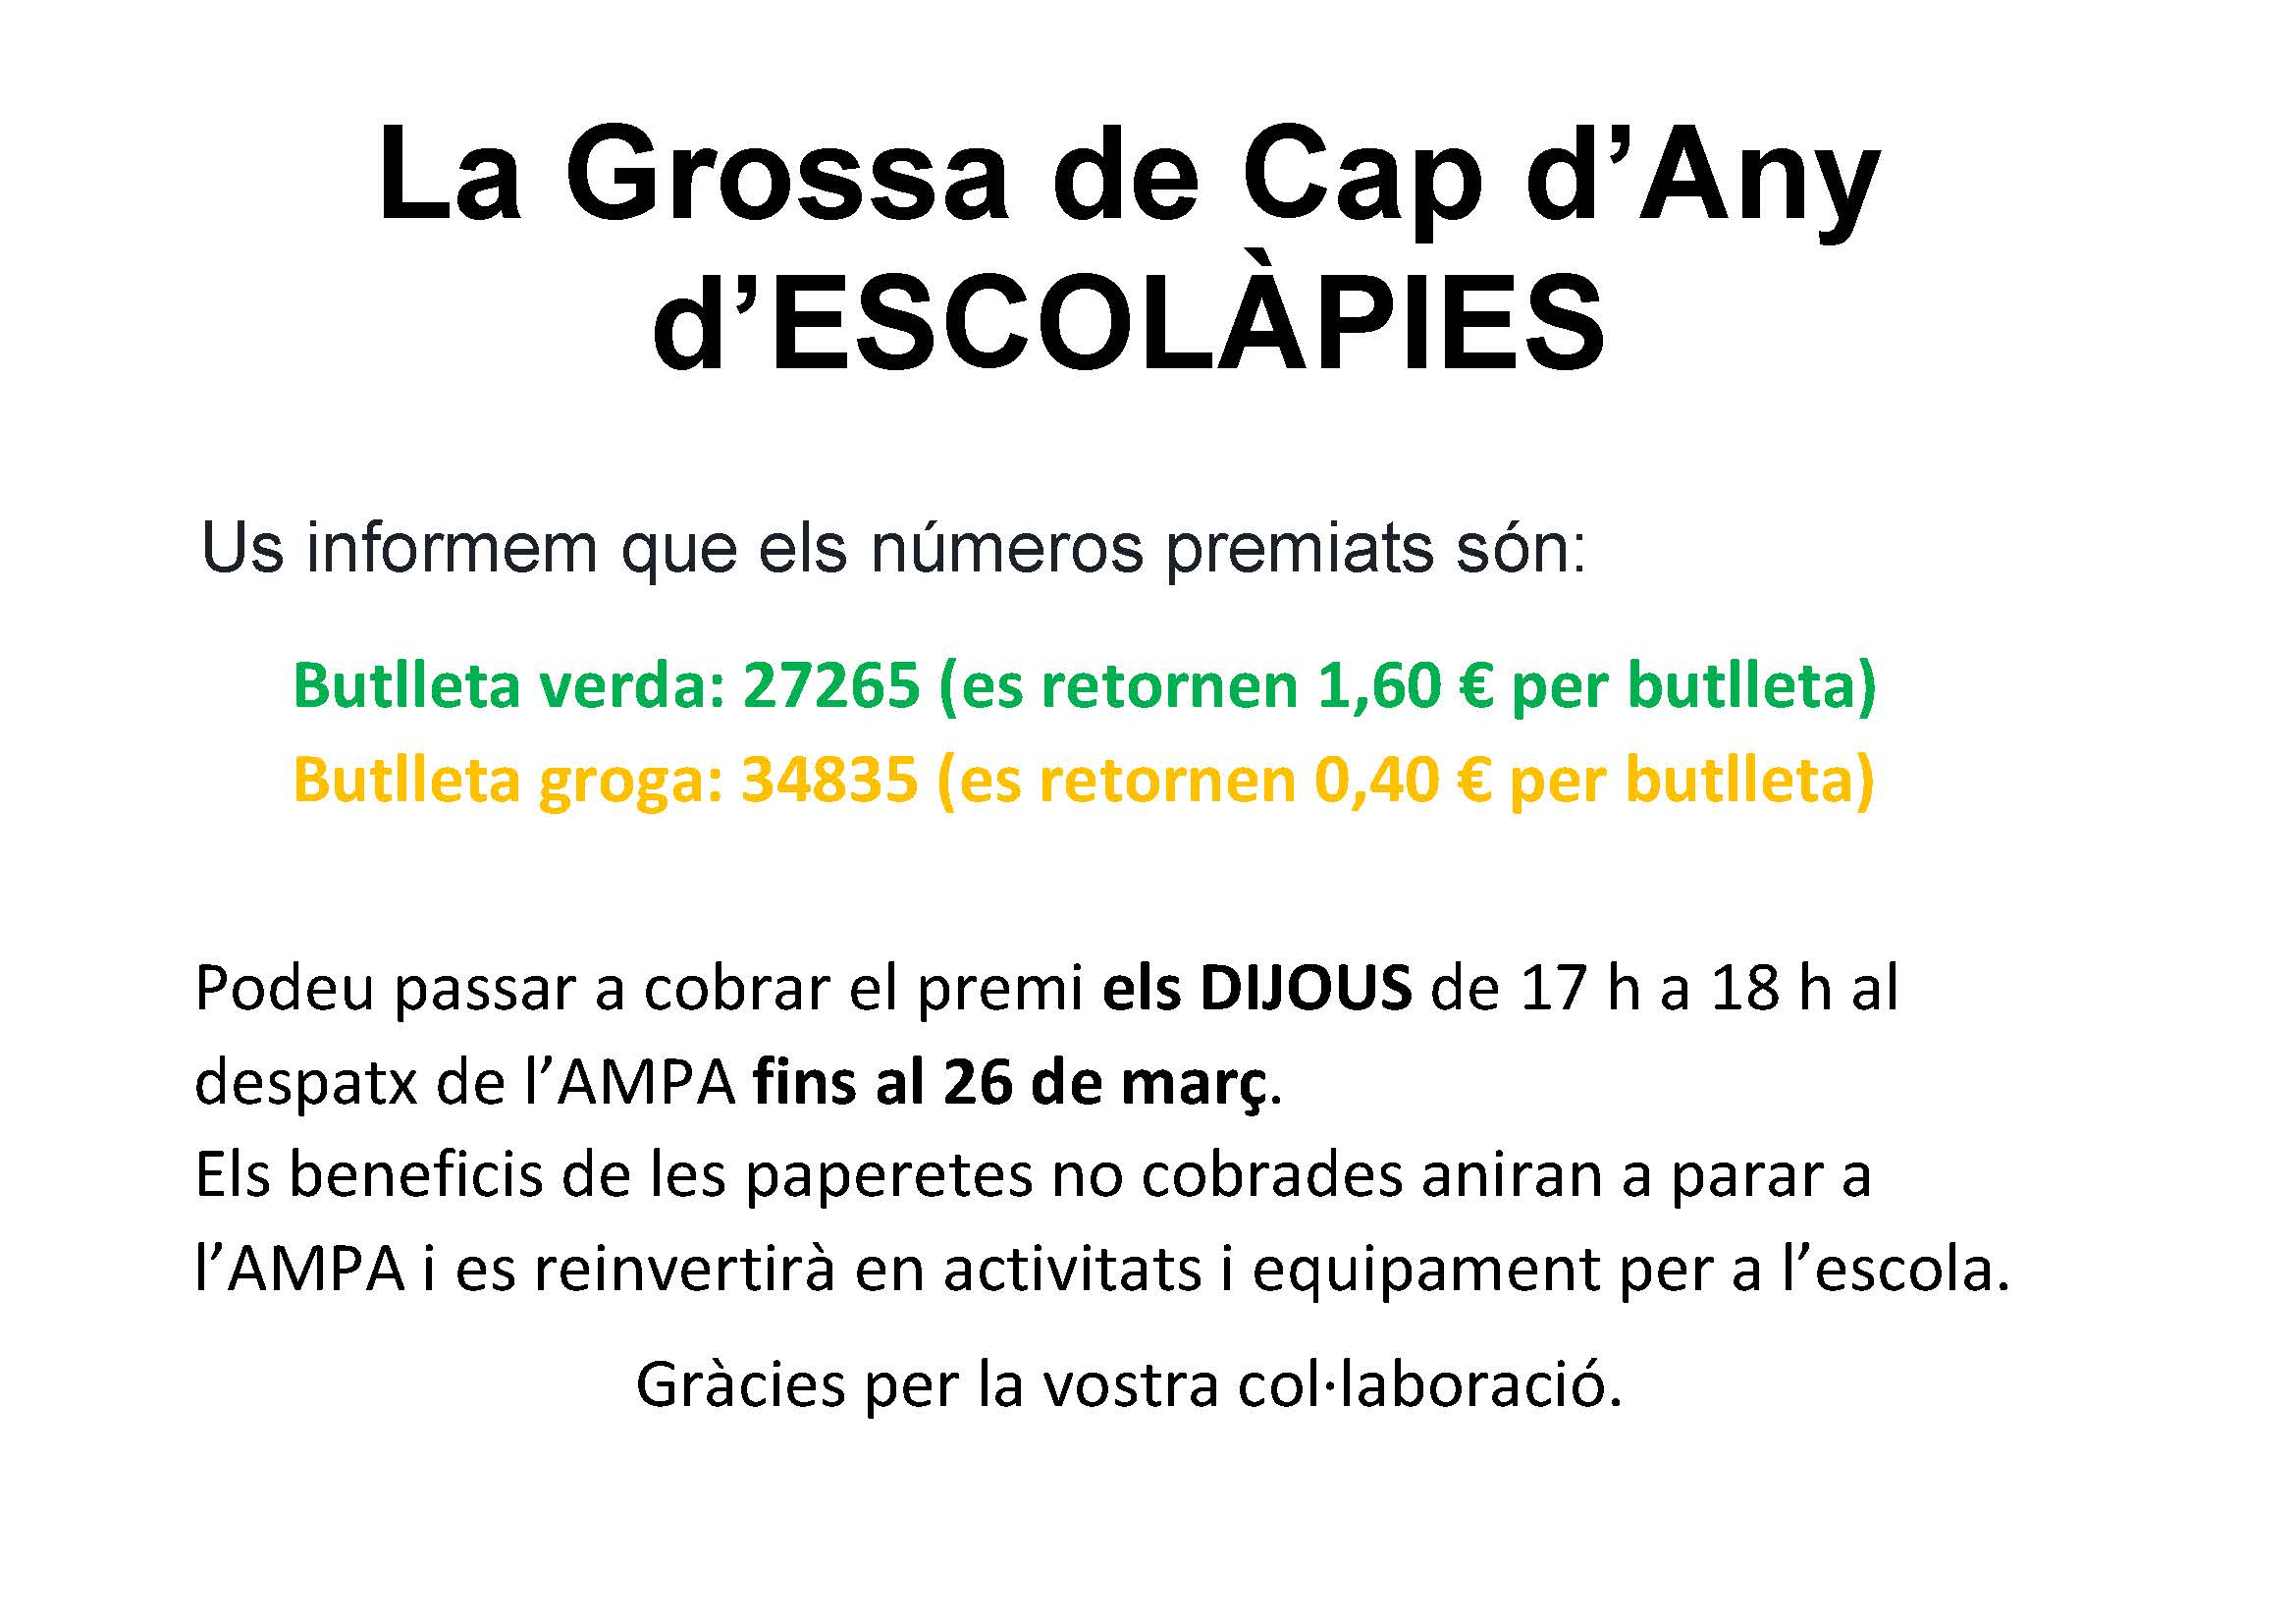 La Grossa de Cap d'Any